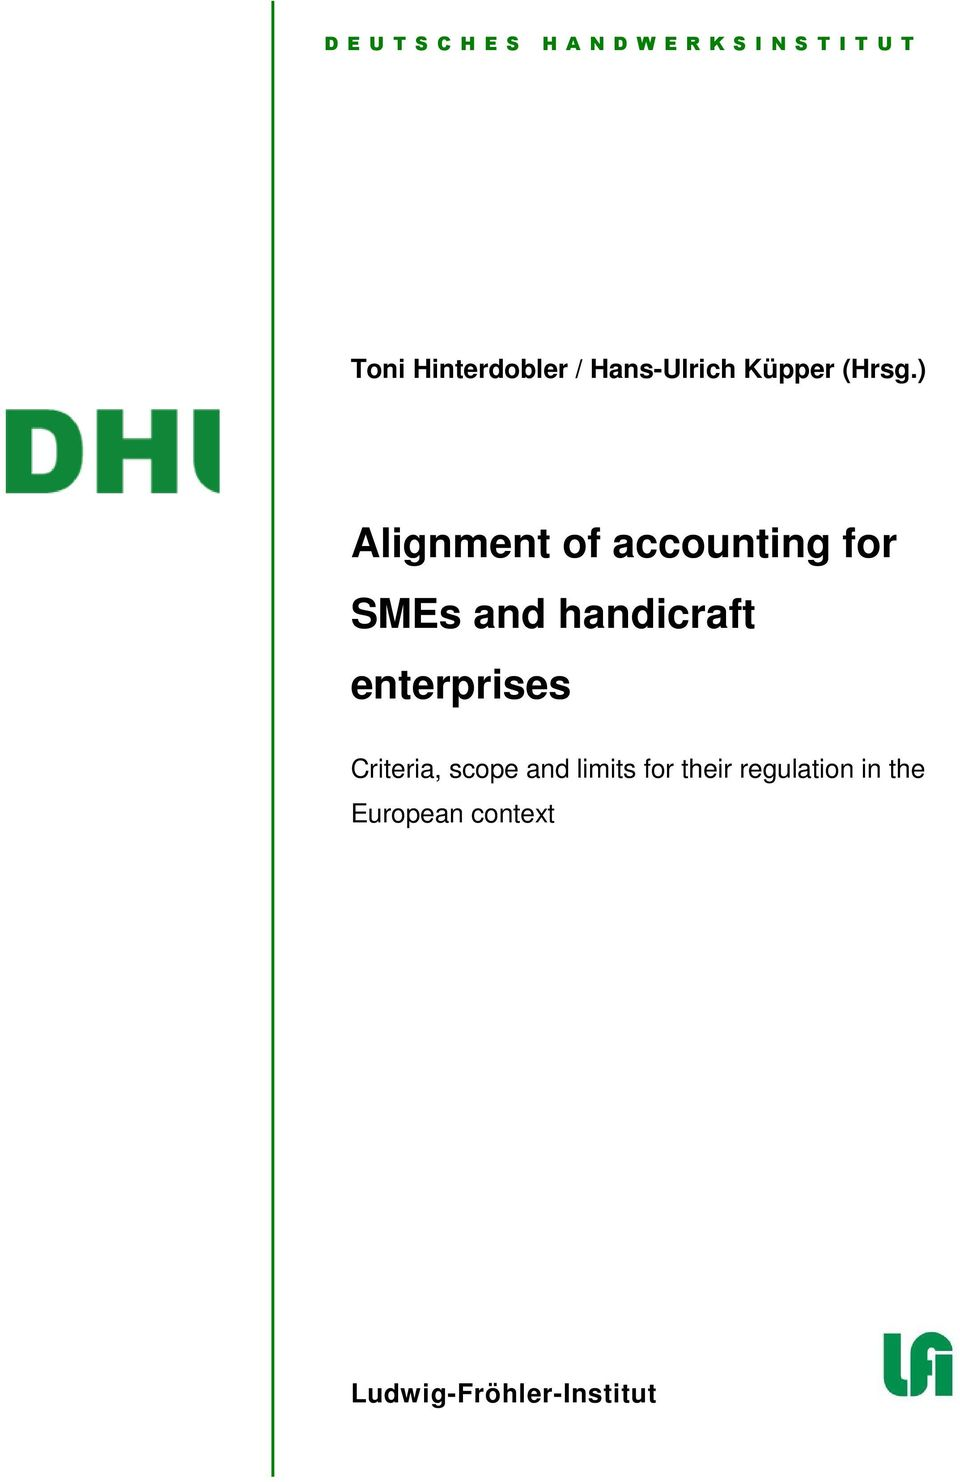 ) Alignment of accounting for SMEs and handicraft enterprises